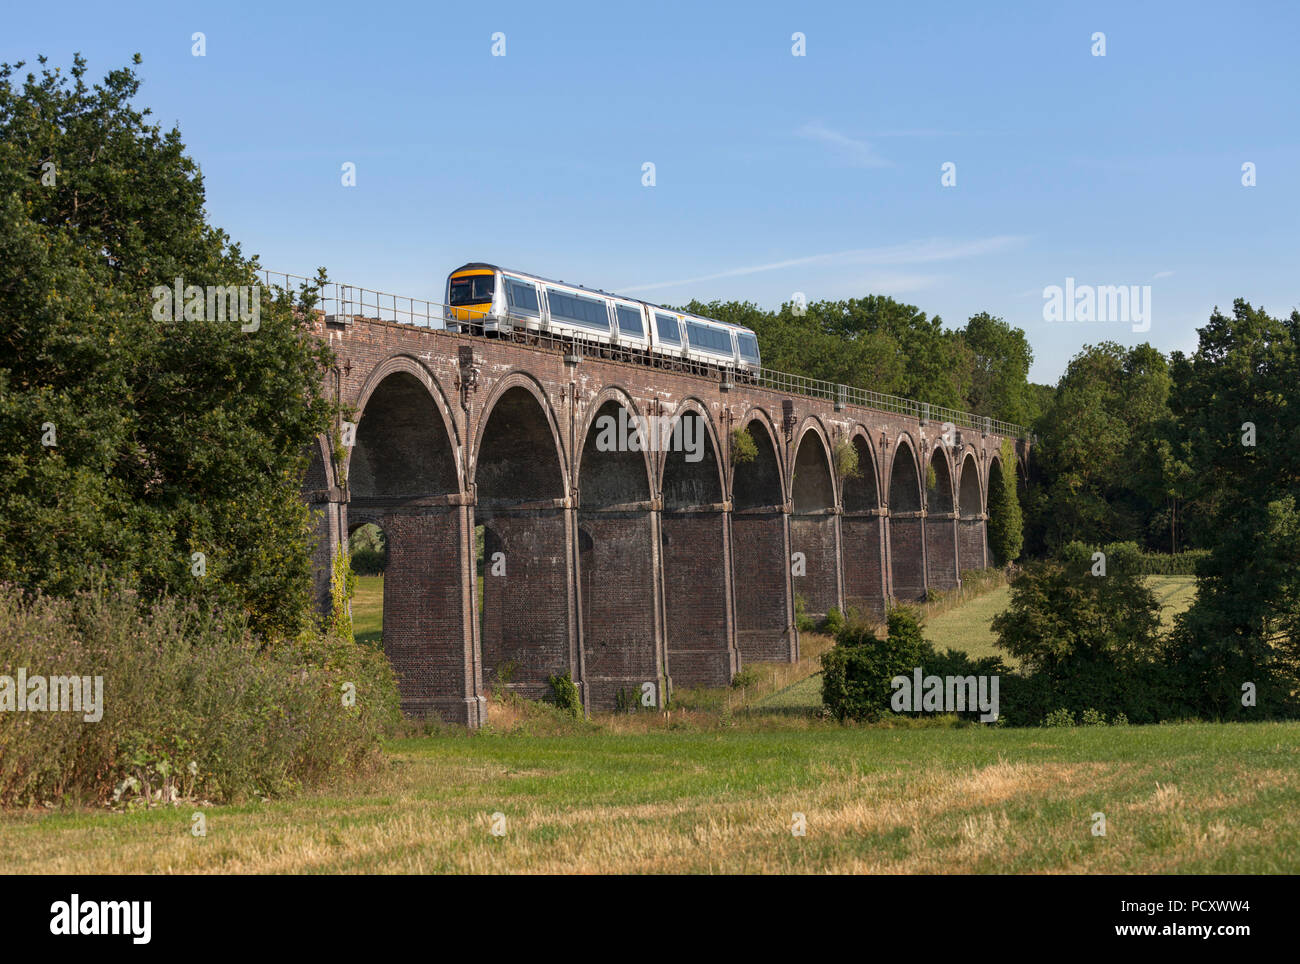 A Chiltern railways class 168 turbostar train crossing  Saunderton Viaduct (south of Banbury)	 with a London to Birmingham Snow hill express - Stock Image